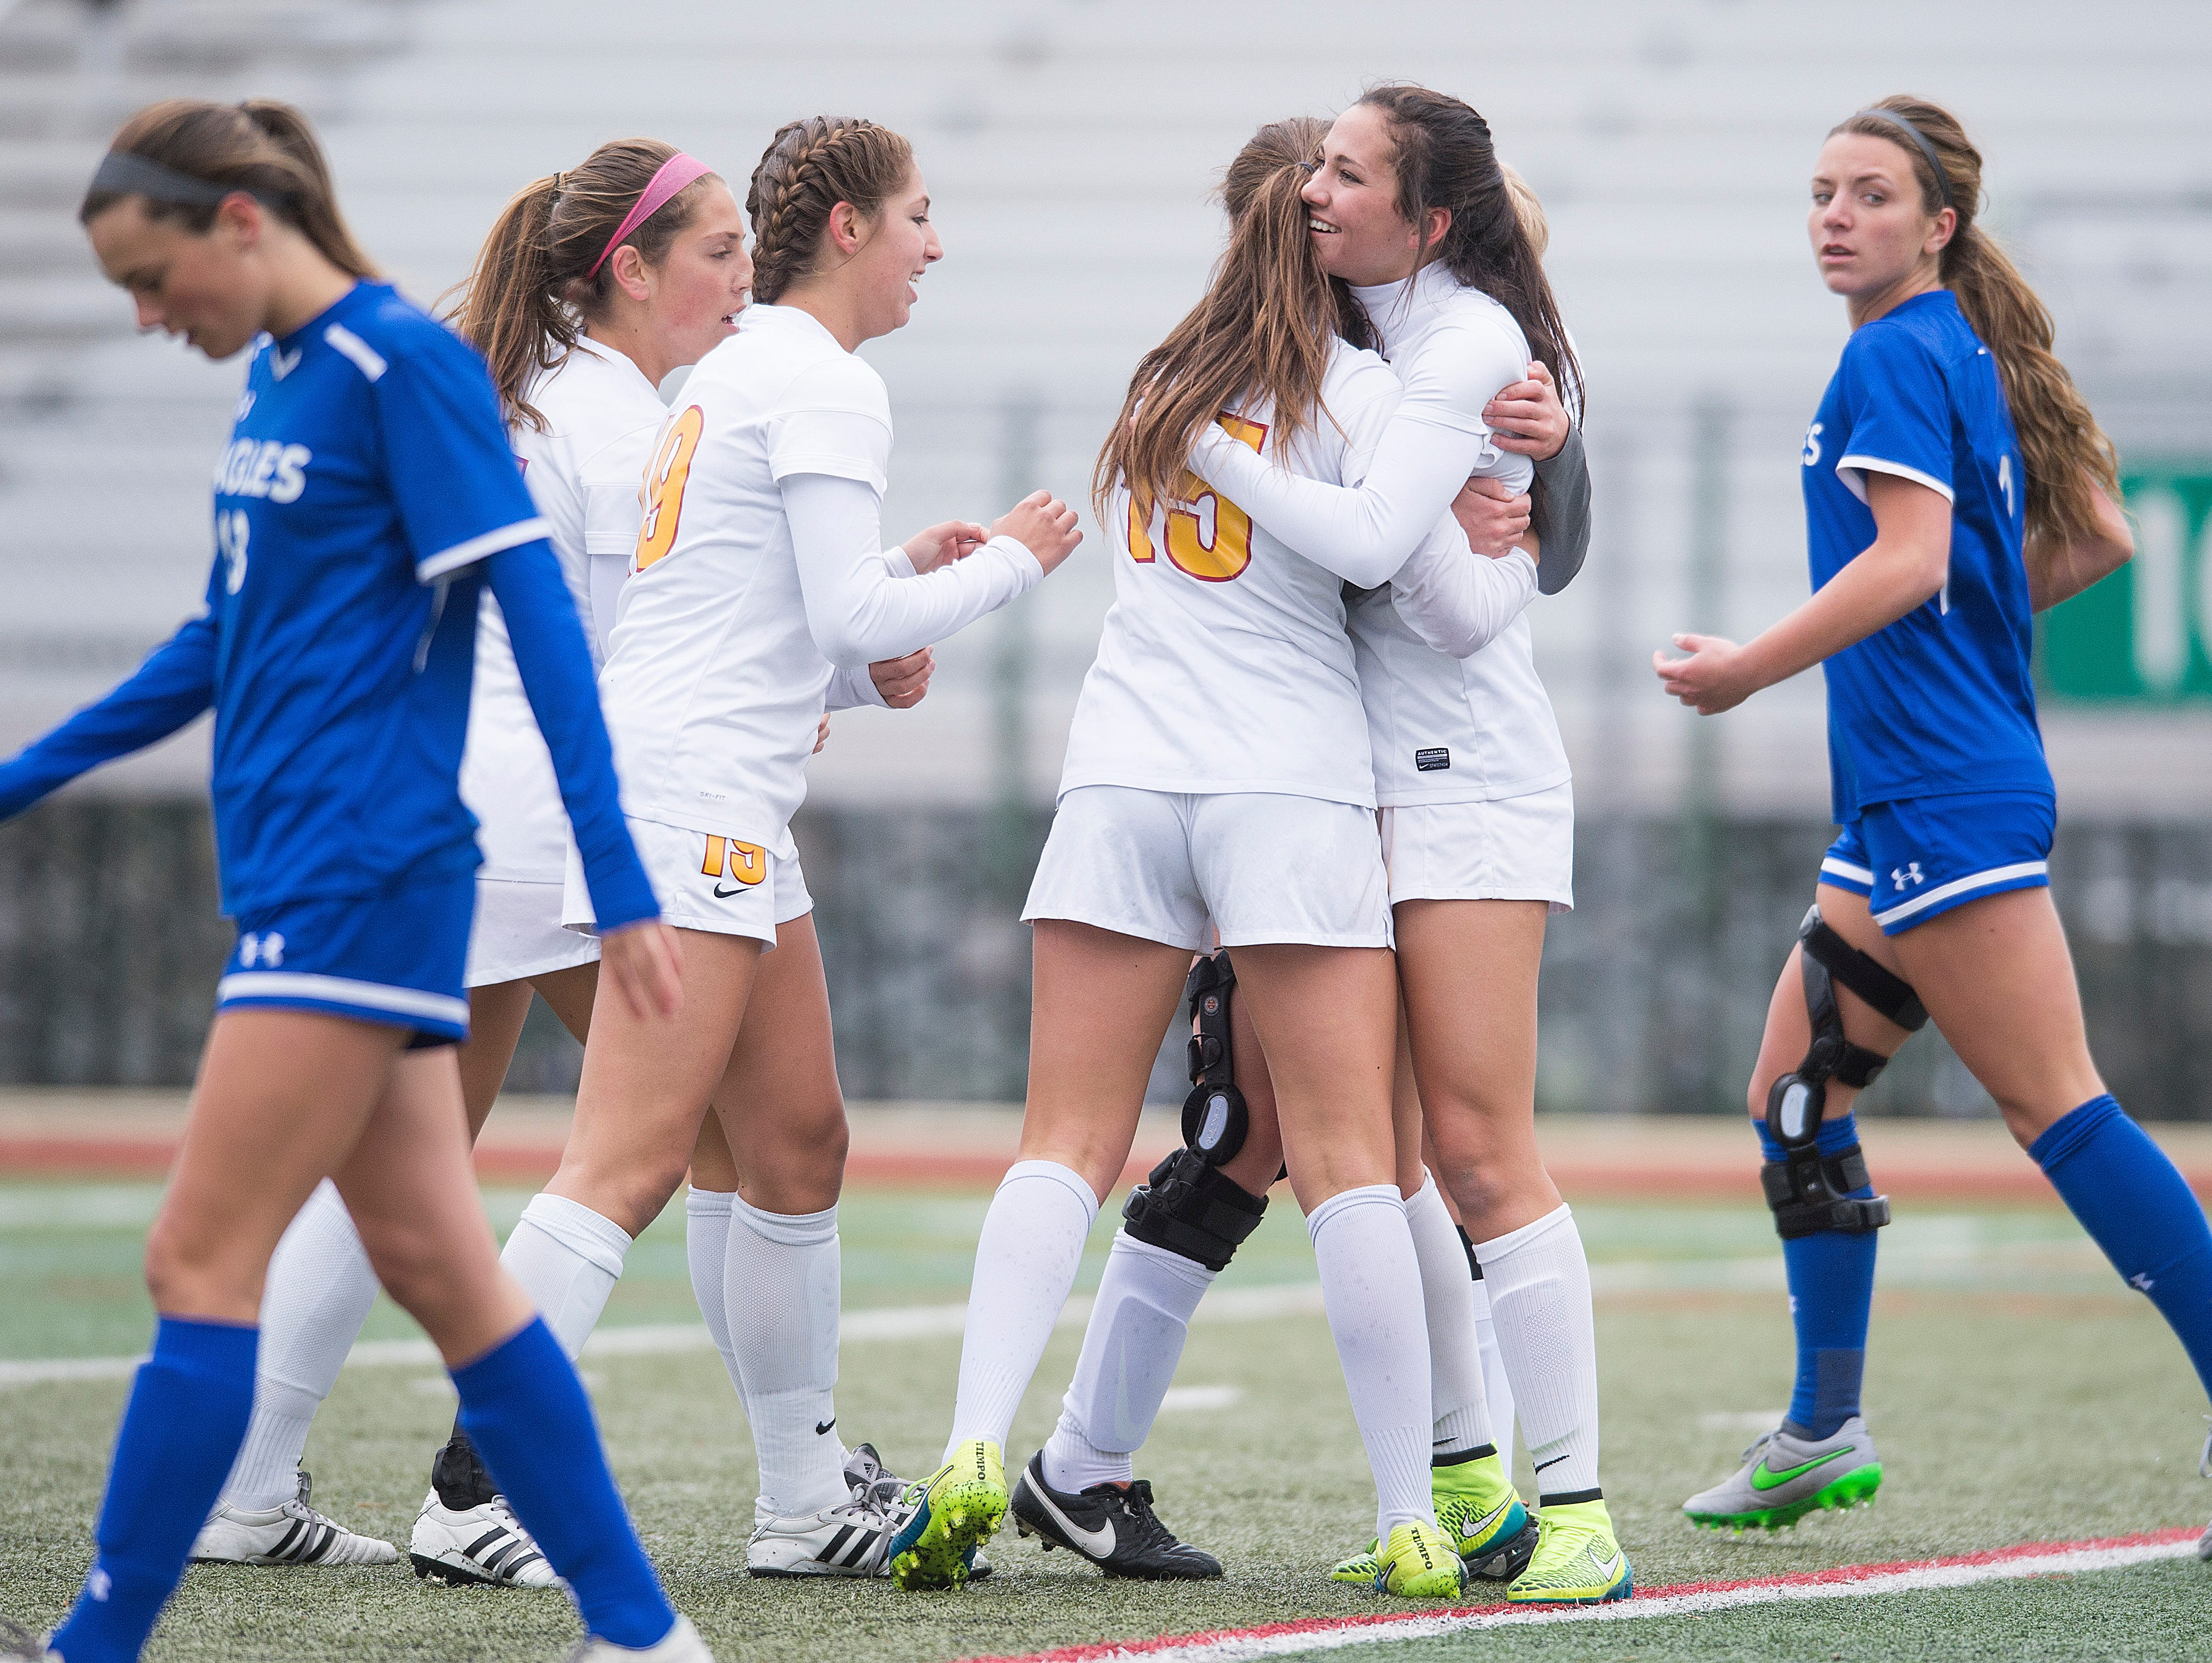 The Rocky Mountain High School soccer team celebrates a goal from Jade Gosar during a game against Broomfield at French Field Thursday, April 28, 2016. The Lobos defeated the Eagles 2-1 in double overtime.